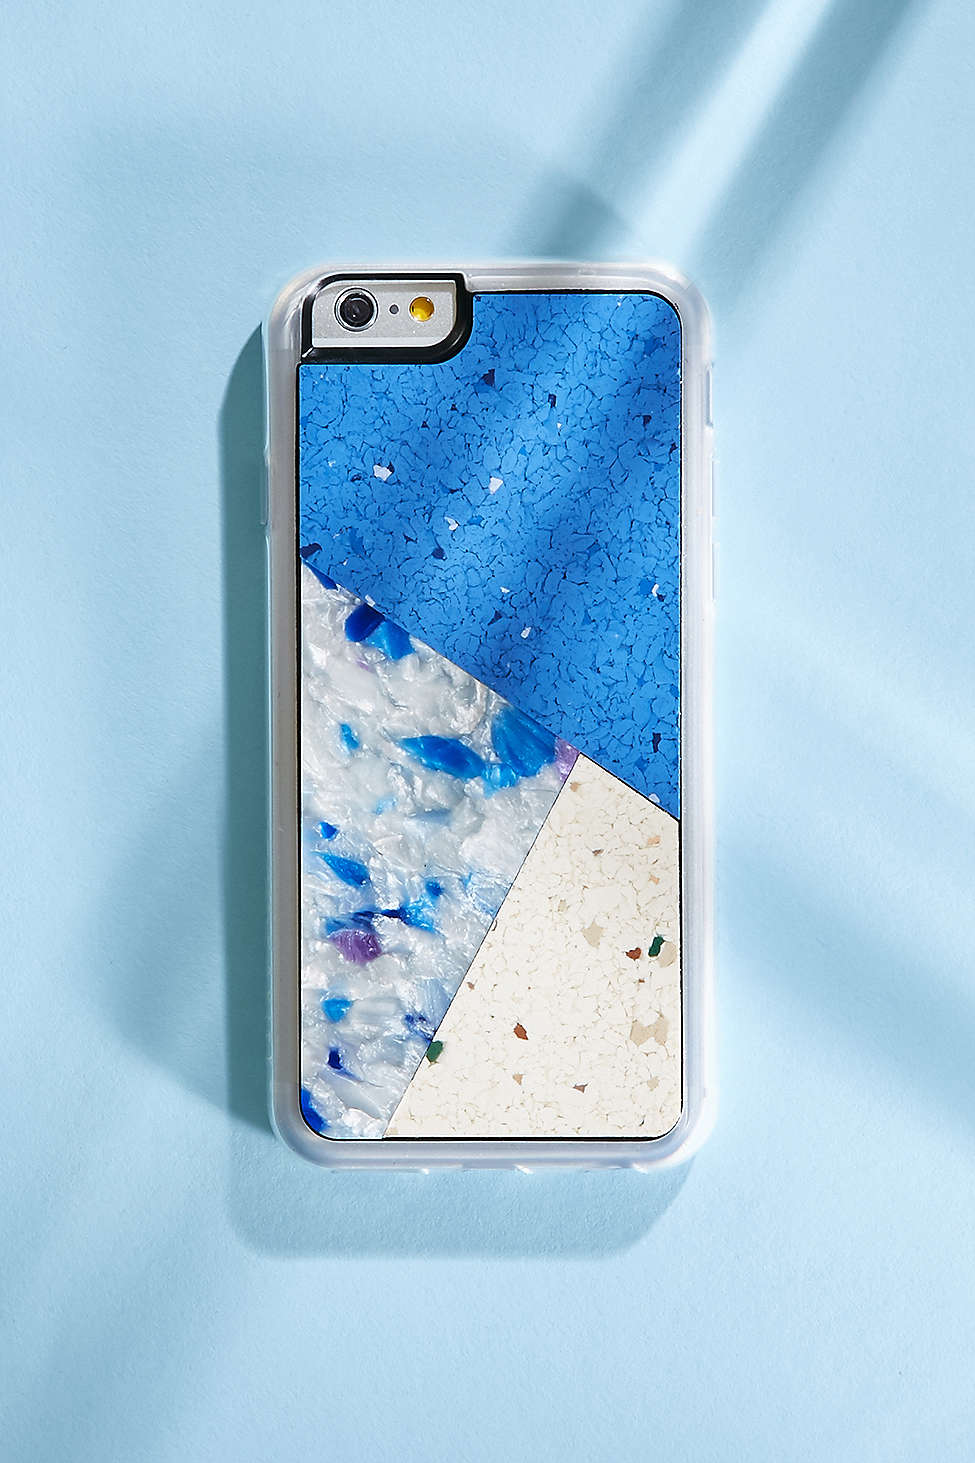 Terrazzo iPhone case from Urban Outfitters